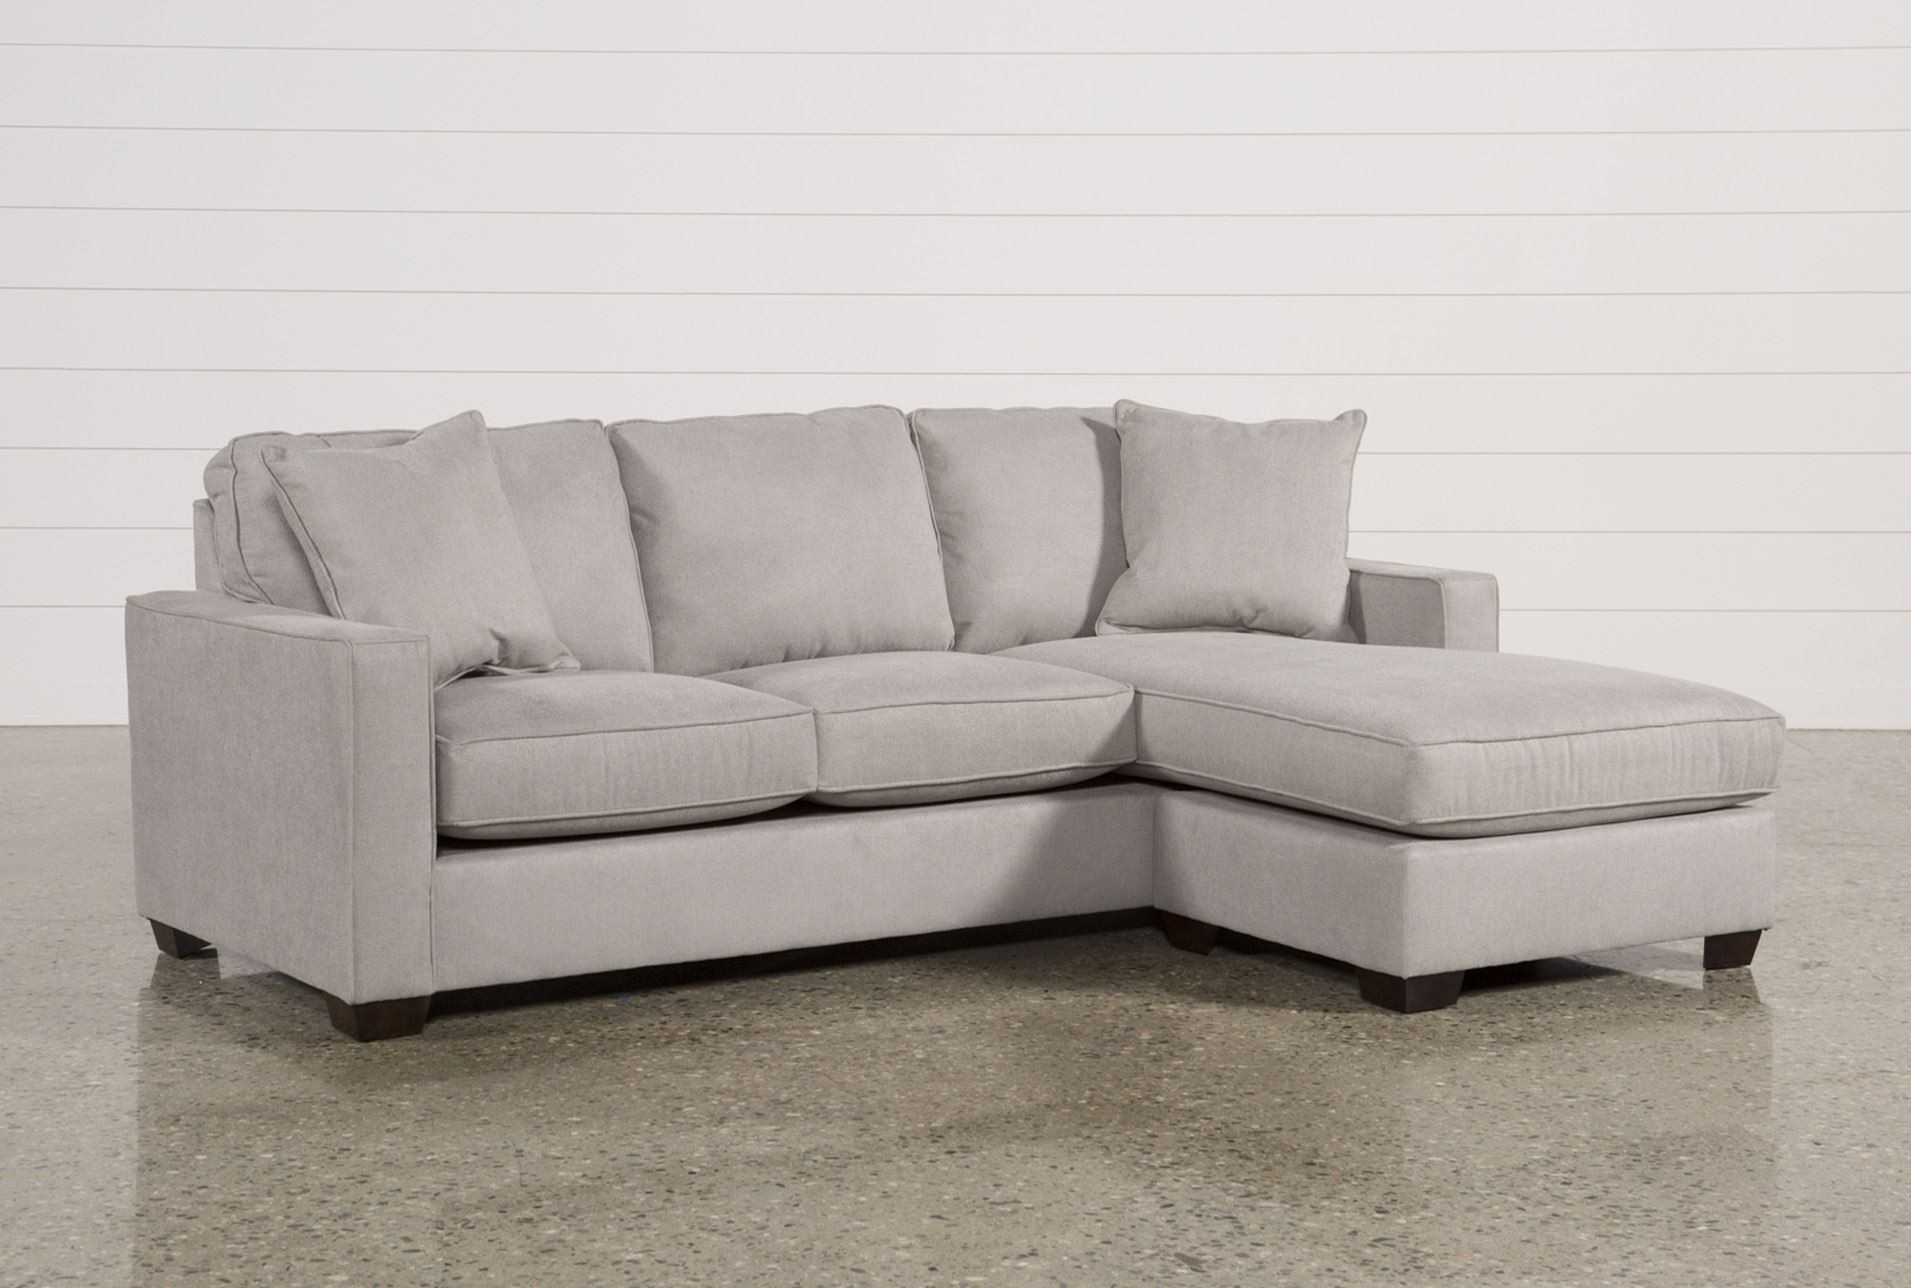 Living Spaces Sectional Couches - Implantologiabogota.co intended for Haven 3 Piece Sectionals (Image 23 of 32)